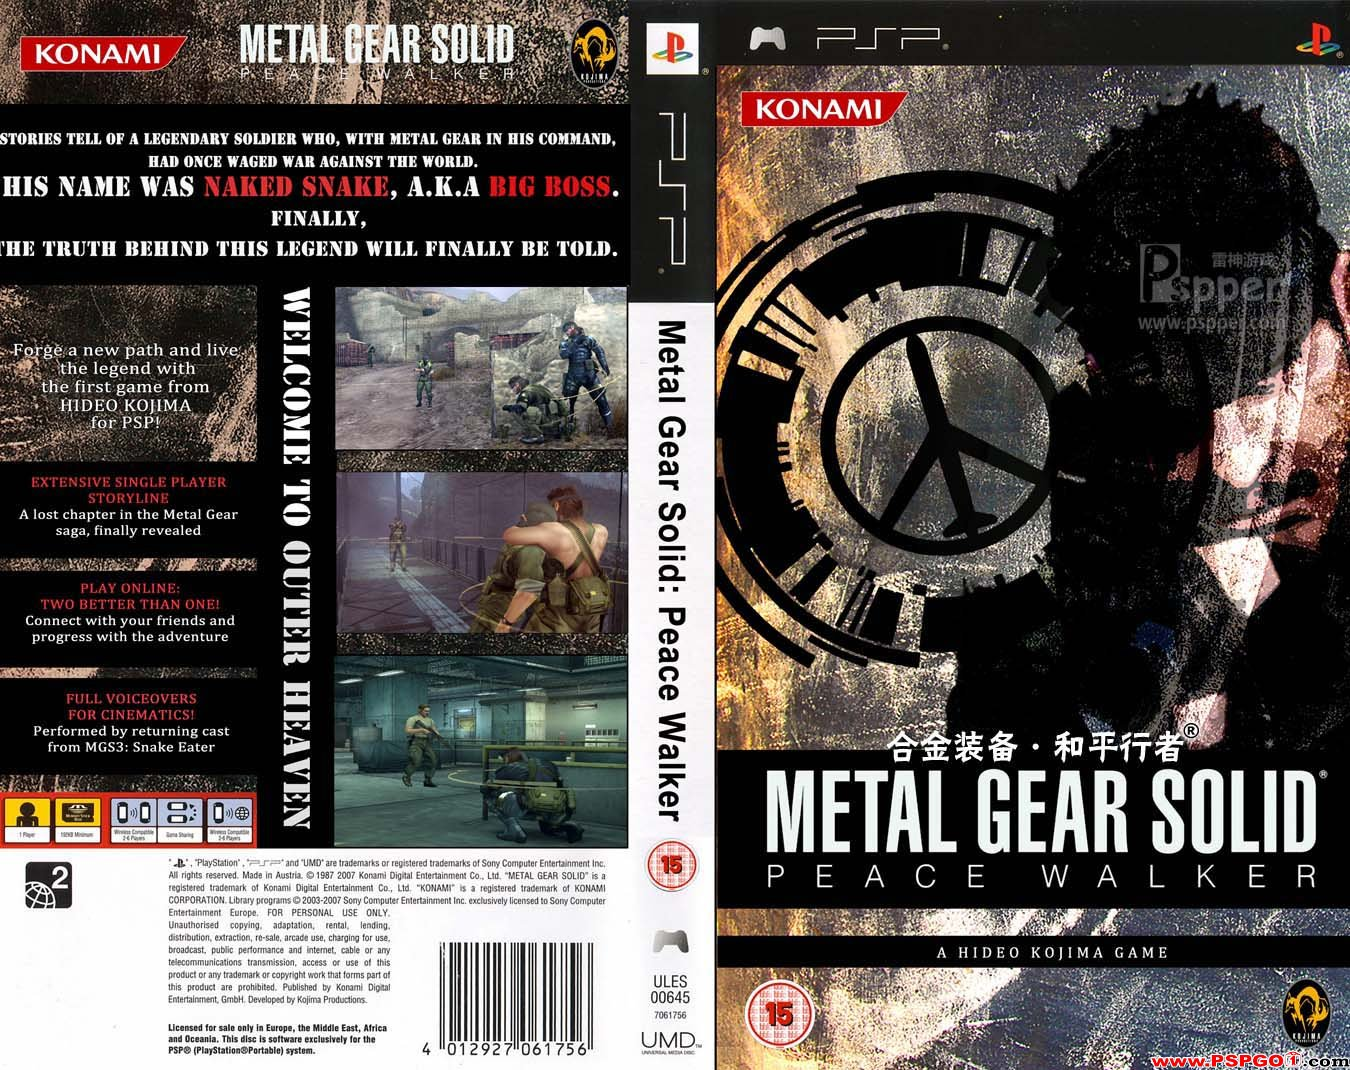 Metal gear solid peace walker торрент